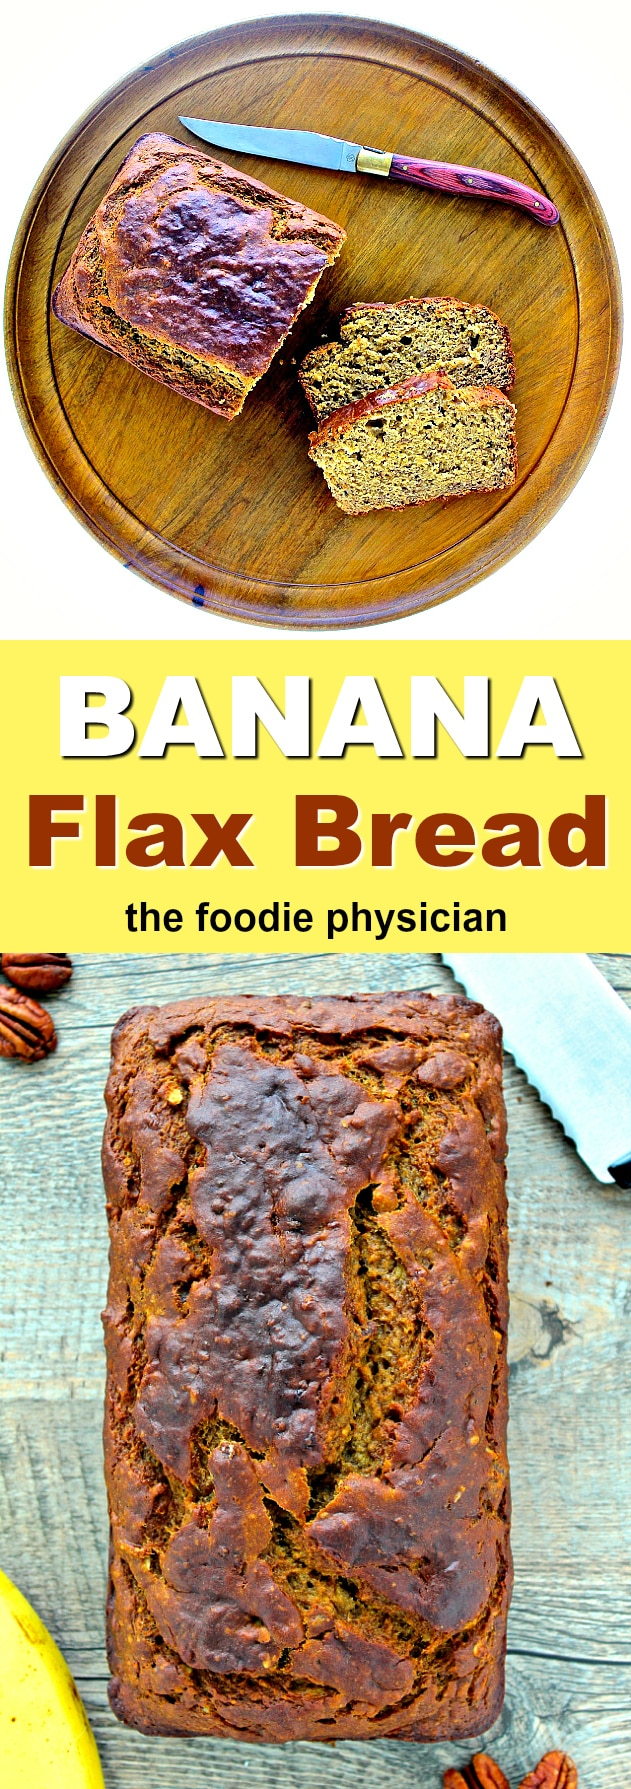 Dining with the doc banana flax bread the foodie physician my banana flax bread is packed with nutritious whole grains flaxseed and greek yogurt forumfinder Image collections